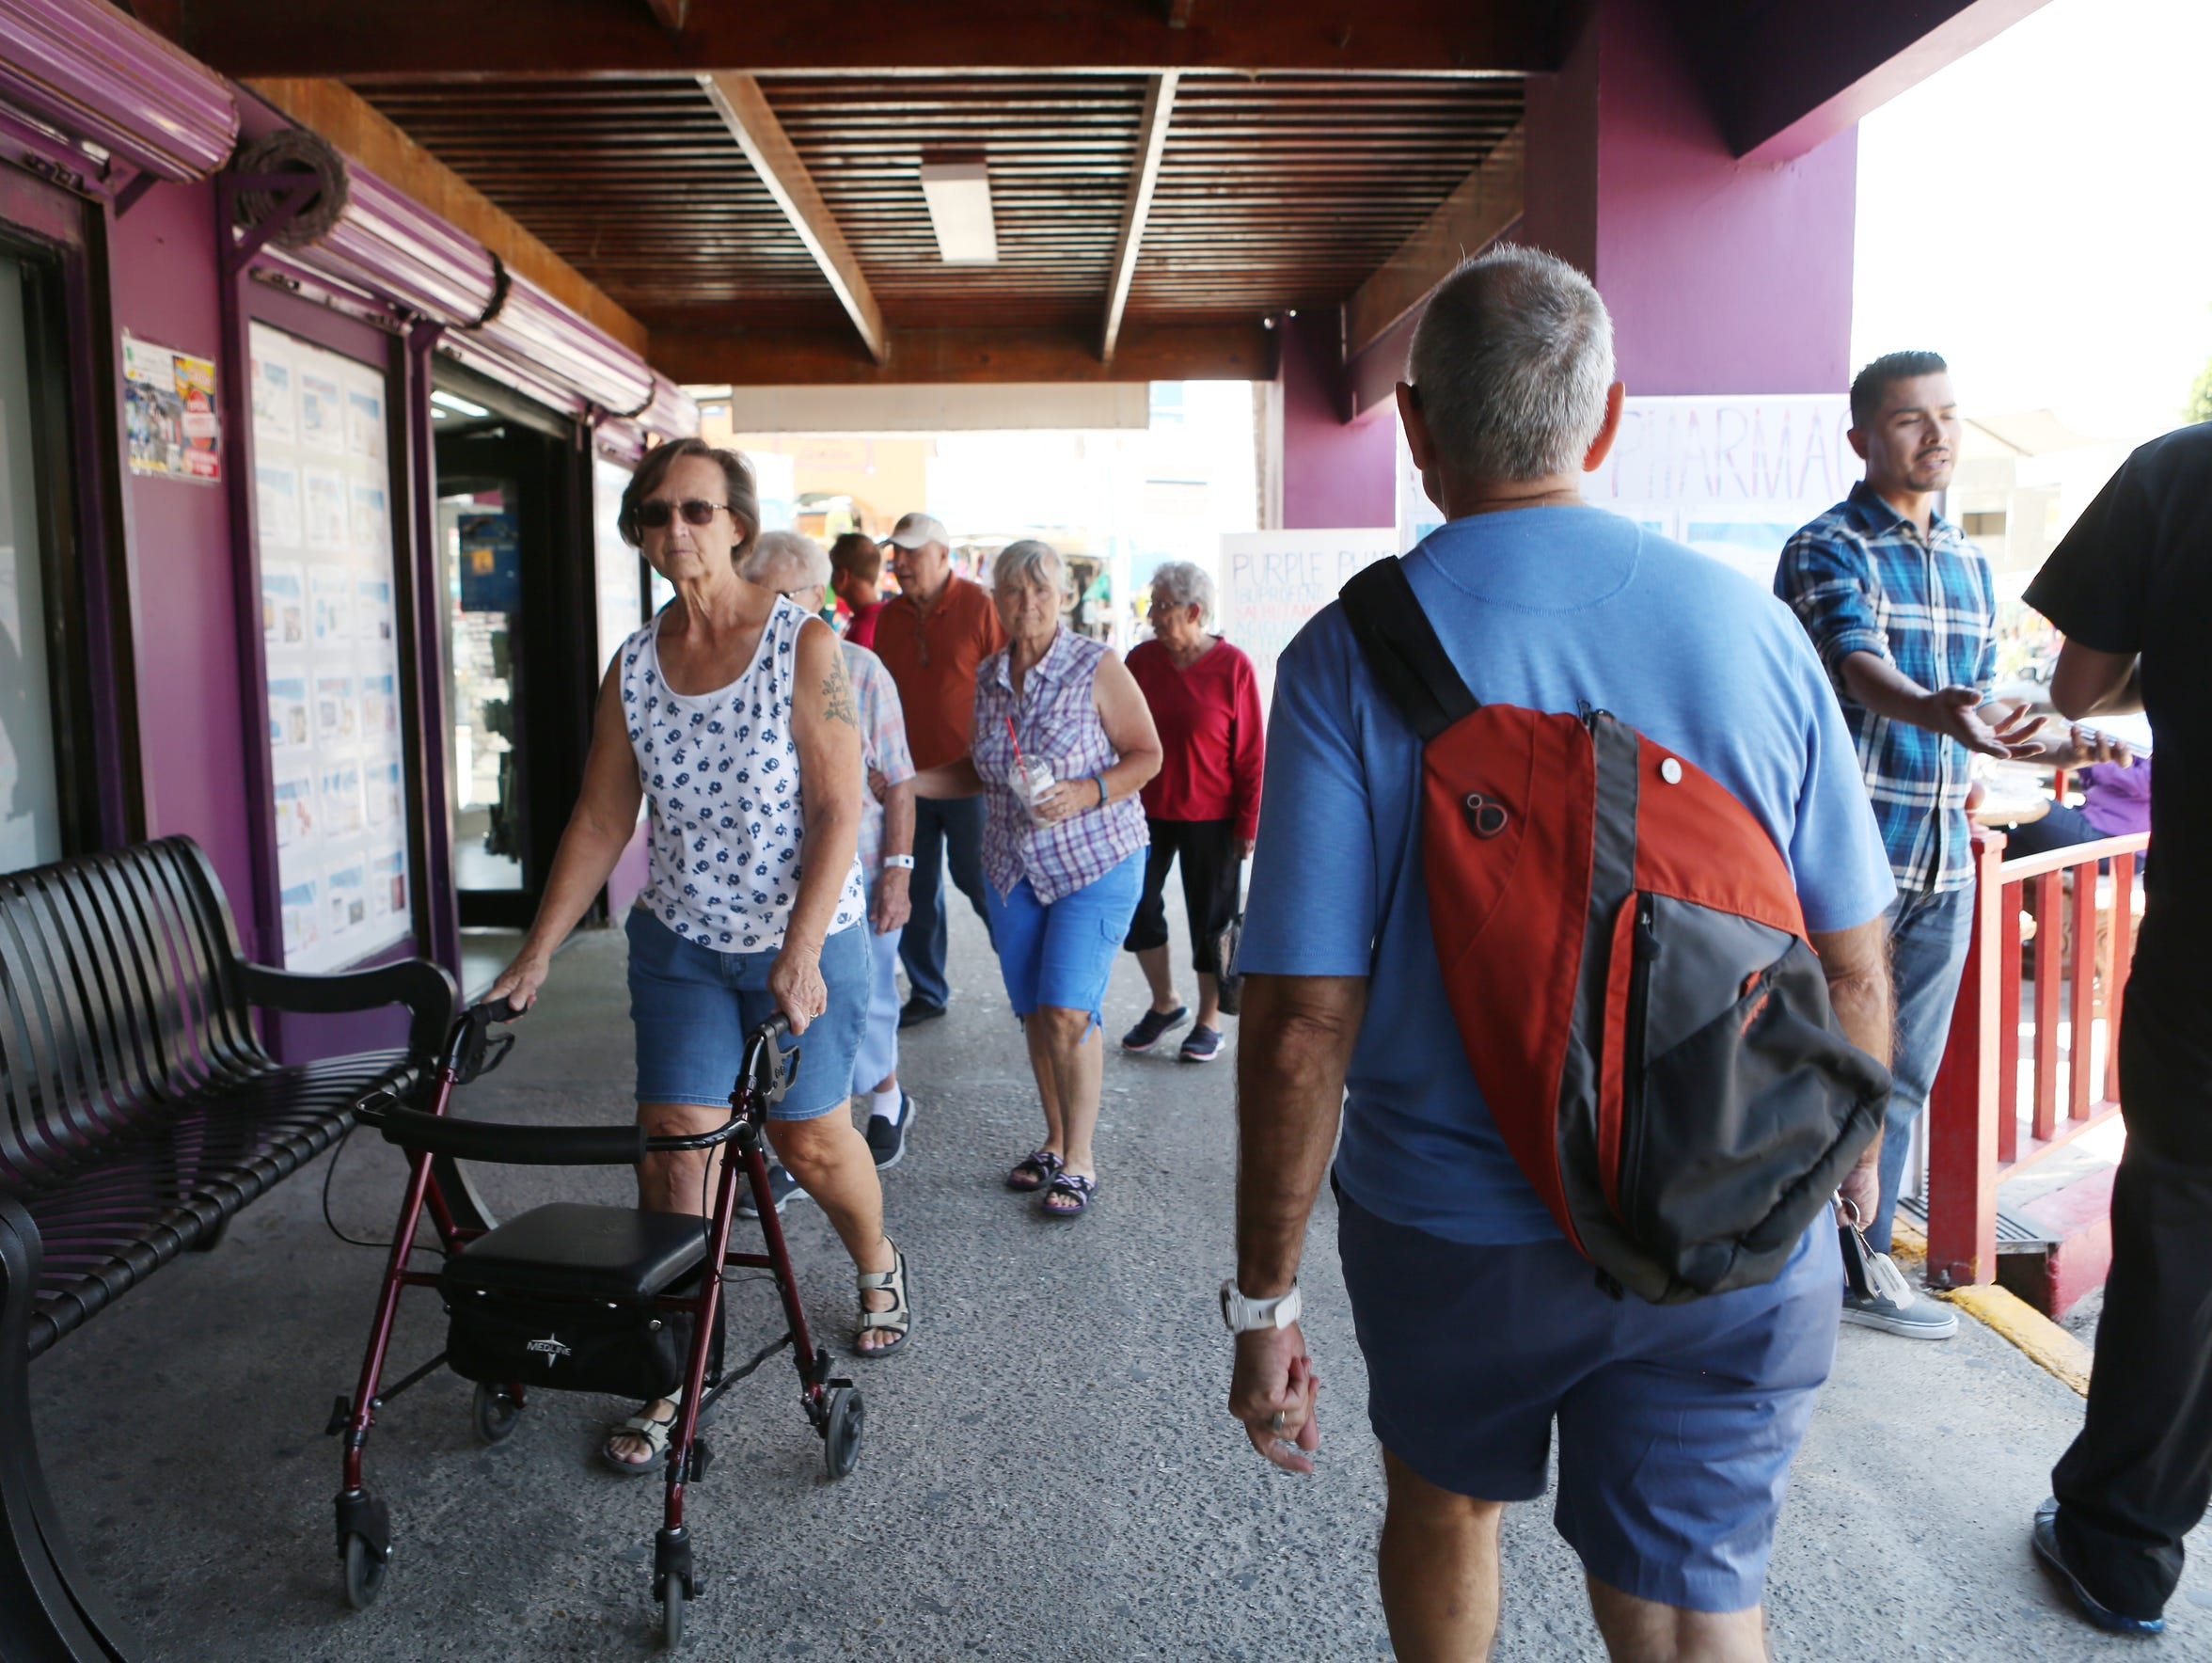 Palm Springs resident Vic Yepello walks through a busy